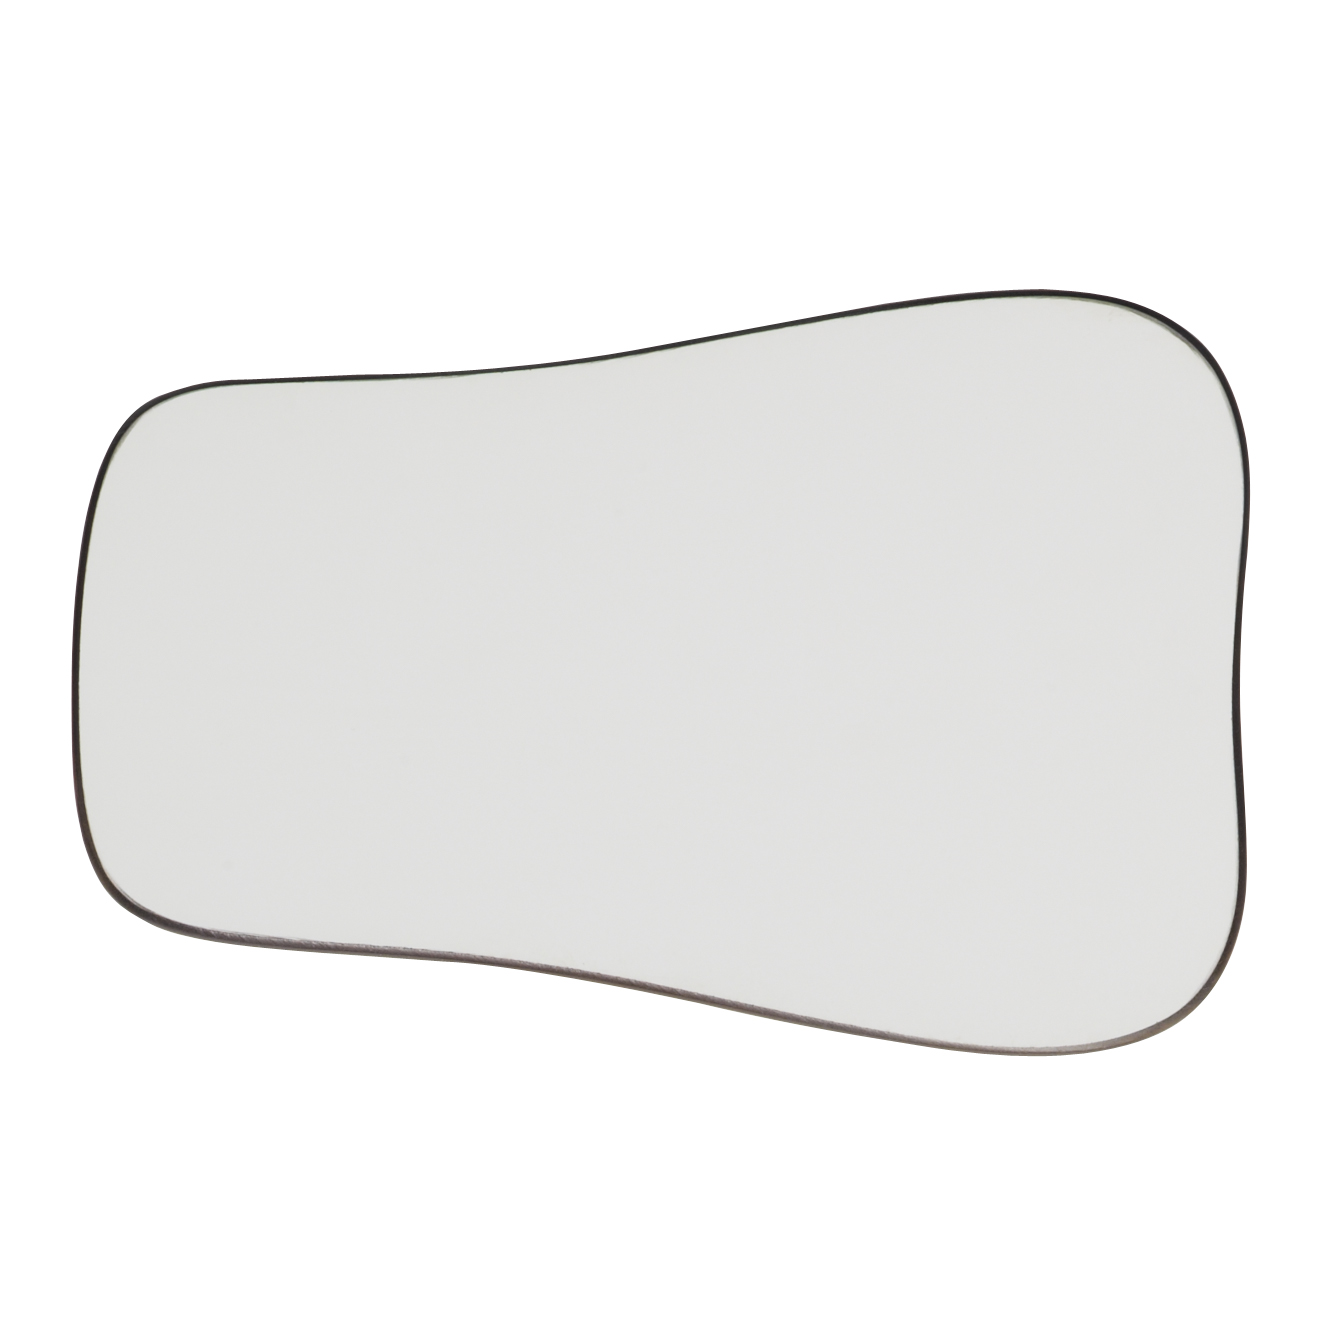 Miroir photographie dentaire occlusal enfant technimirror for Miroir dentaire